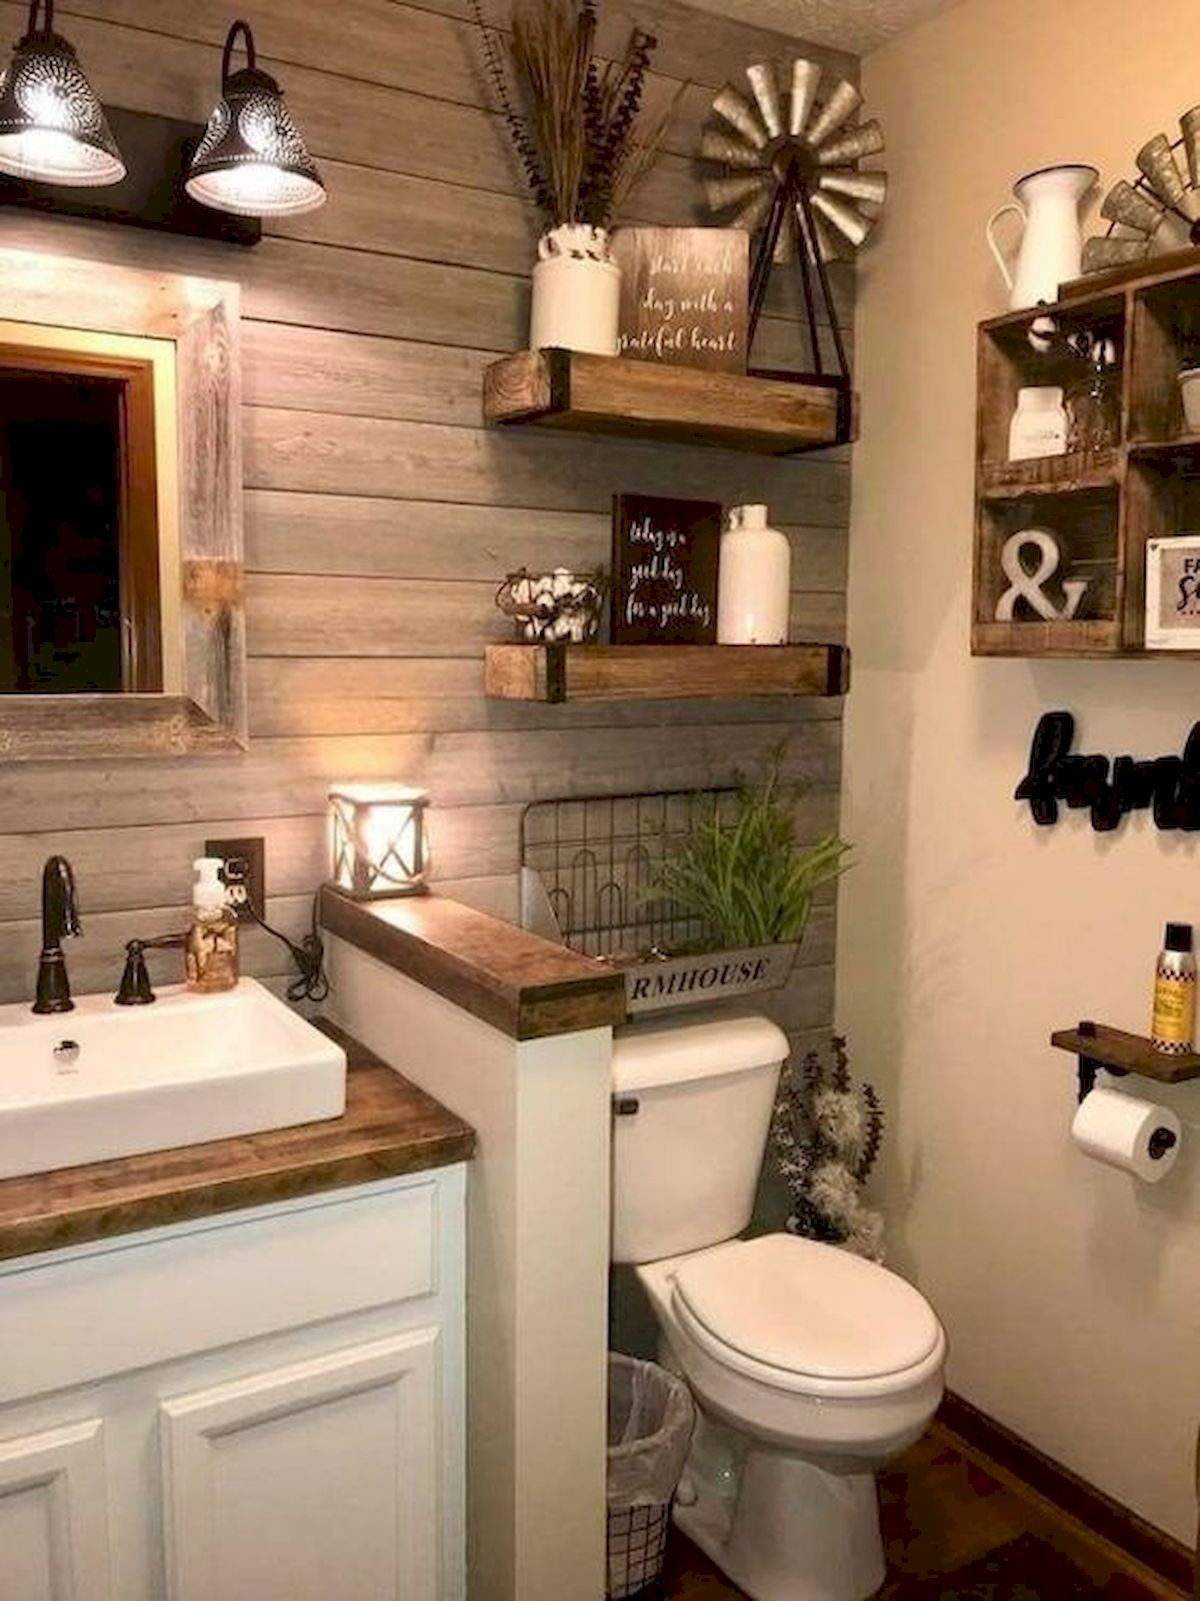 Wall Decorating Ideas for Bathrooms Awesome 59 Best Farmhouse Wall Decor Ideas for Bathroom Ideaboz